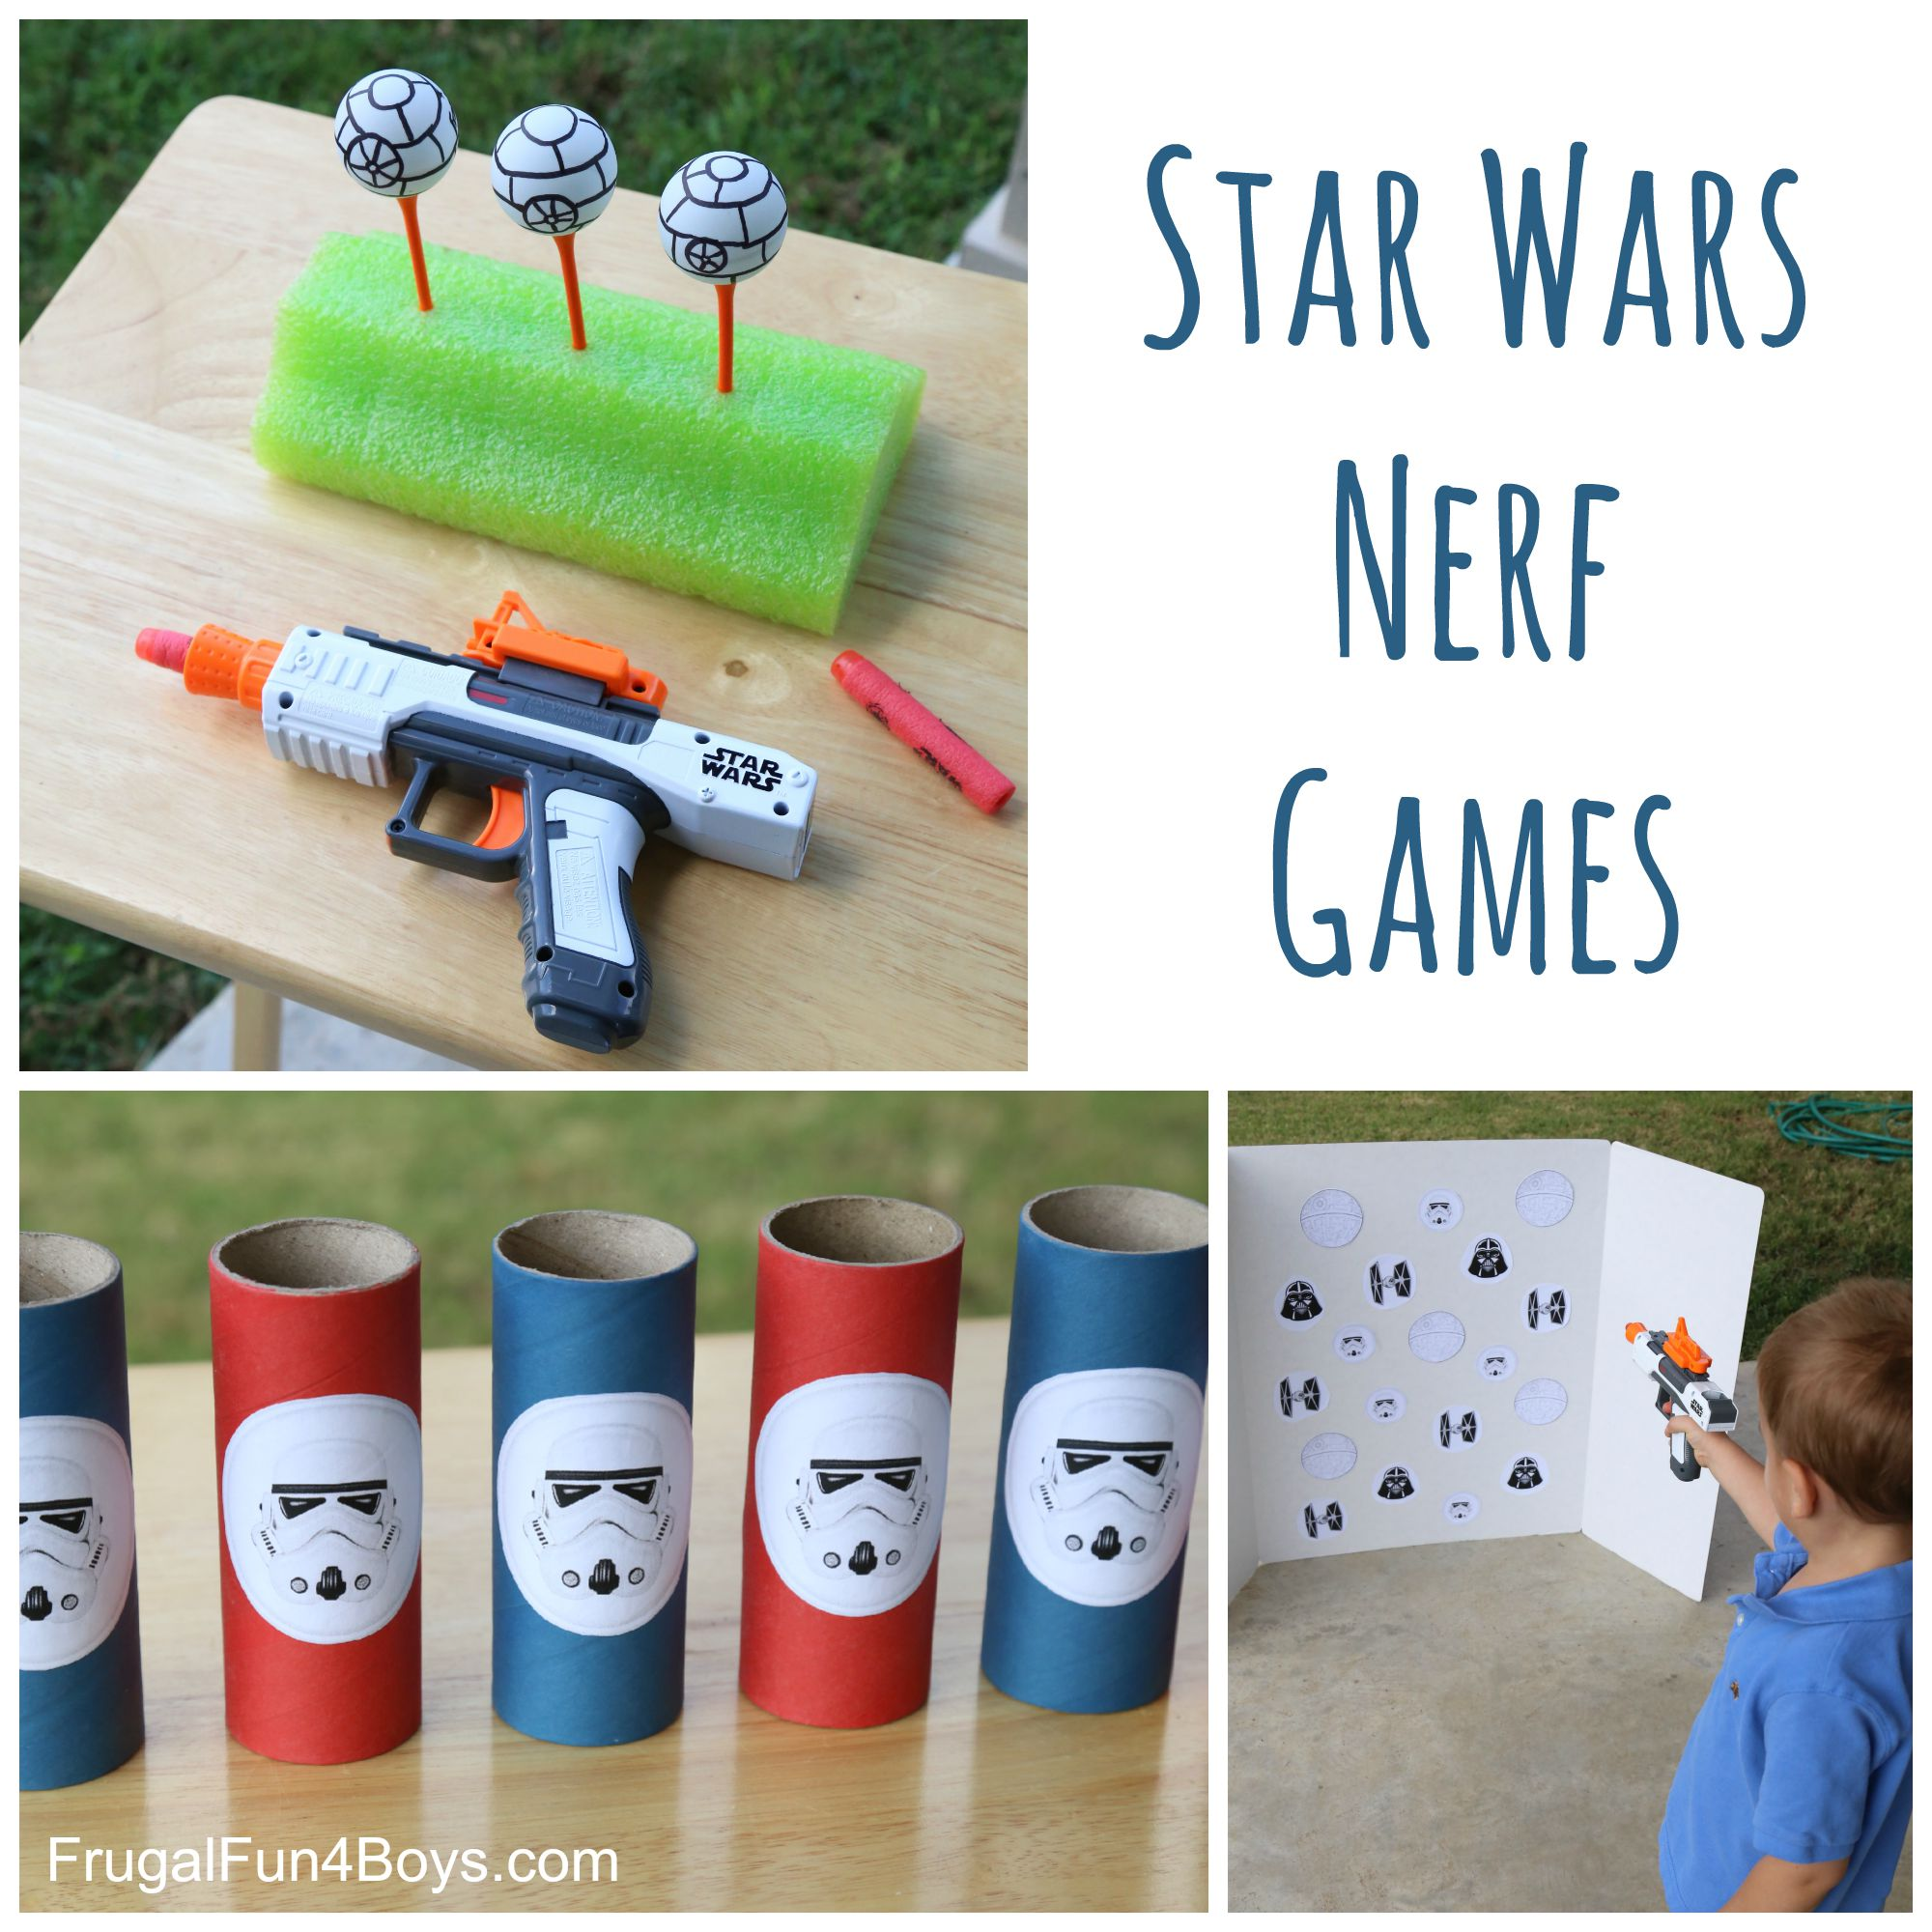 Star Wars Nerf Games